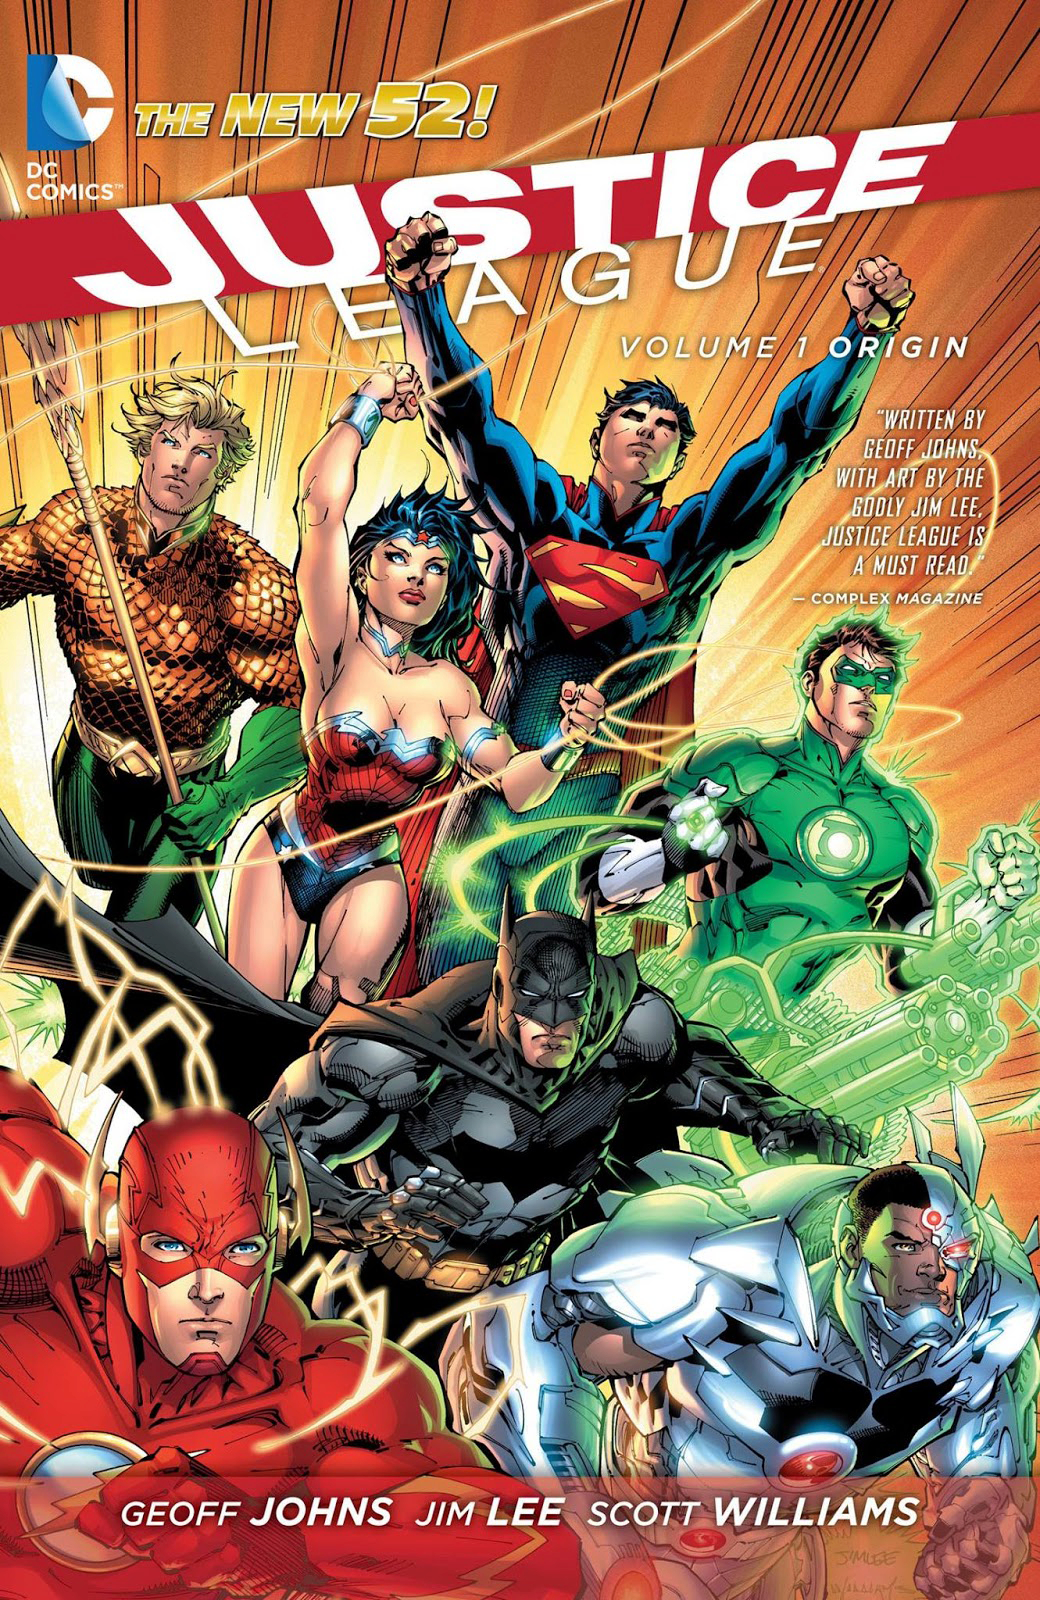 JUSTICE LEAGUE HC VOL 01 ORIGIN